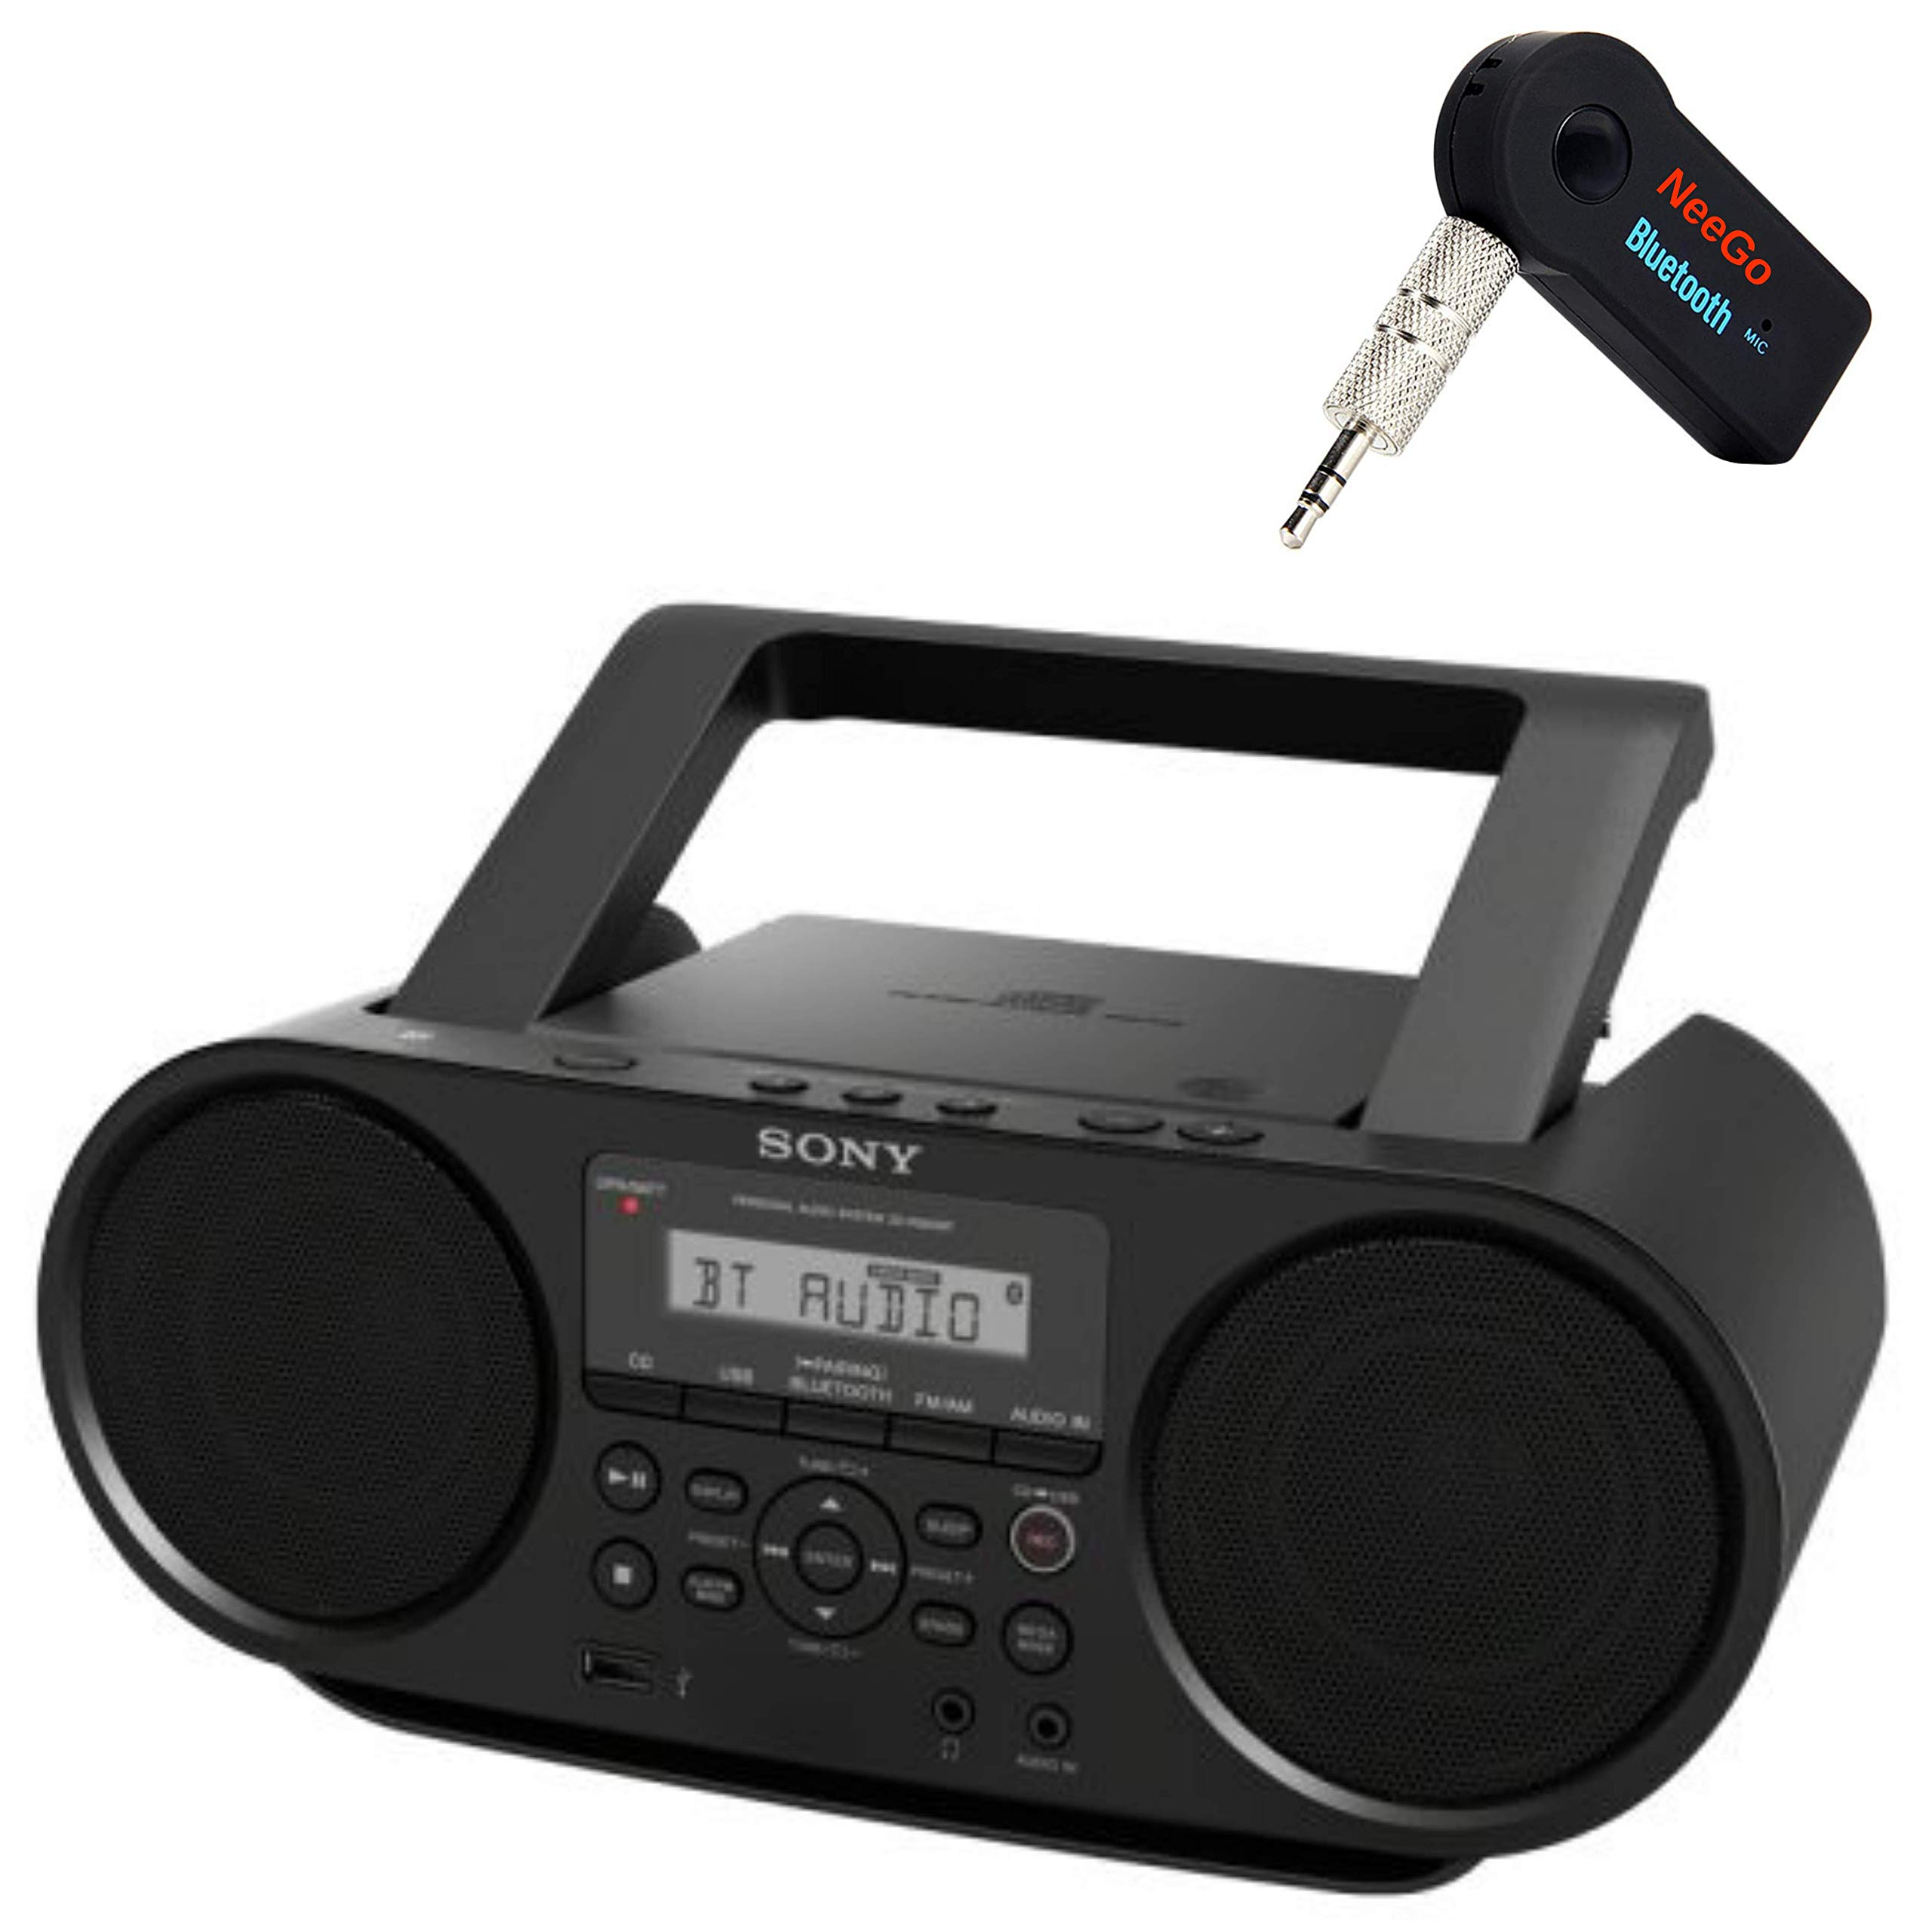 Sony Bluetooth Portable Cd Player Stereo Sound System Bundle/Digital Tuner AM/FM Radio Cd Player Mega Bass Reflex Stereo Sound System Included A NeeGo Wireless Bluetooth Receiver by NEEGO